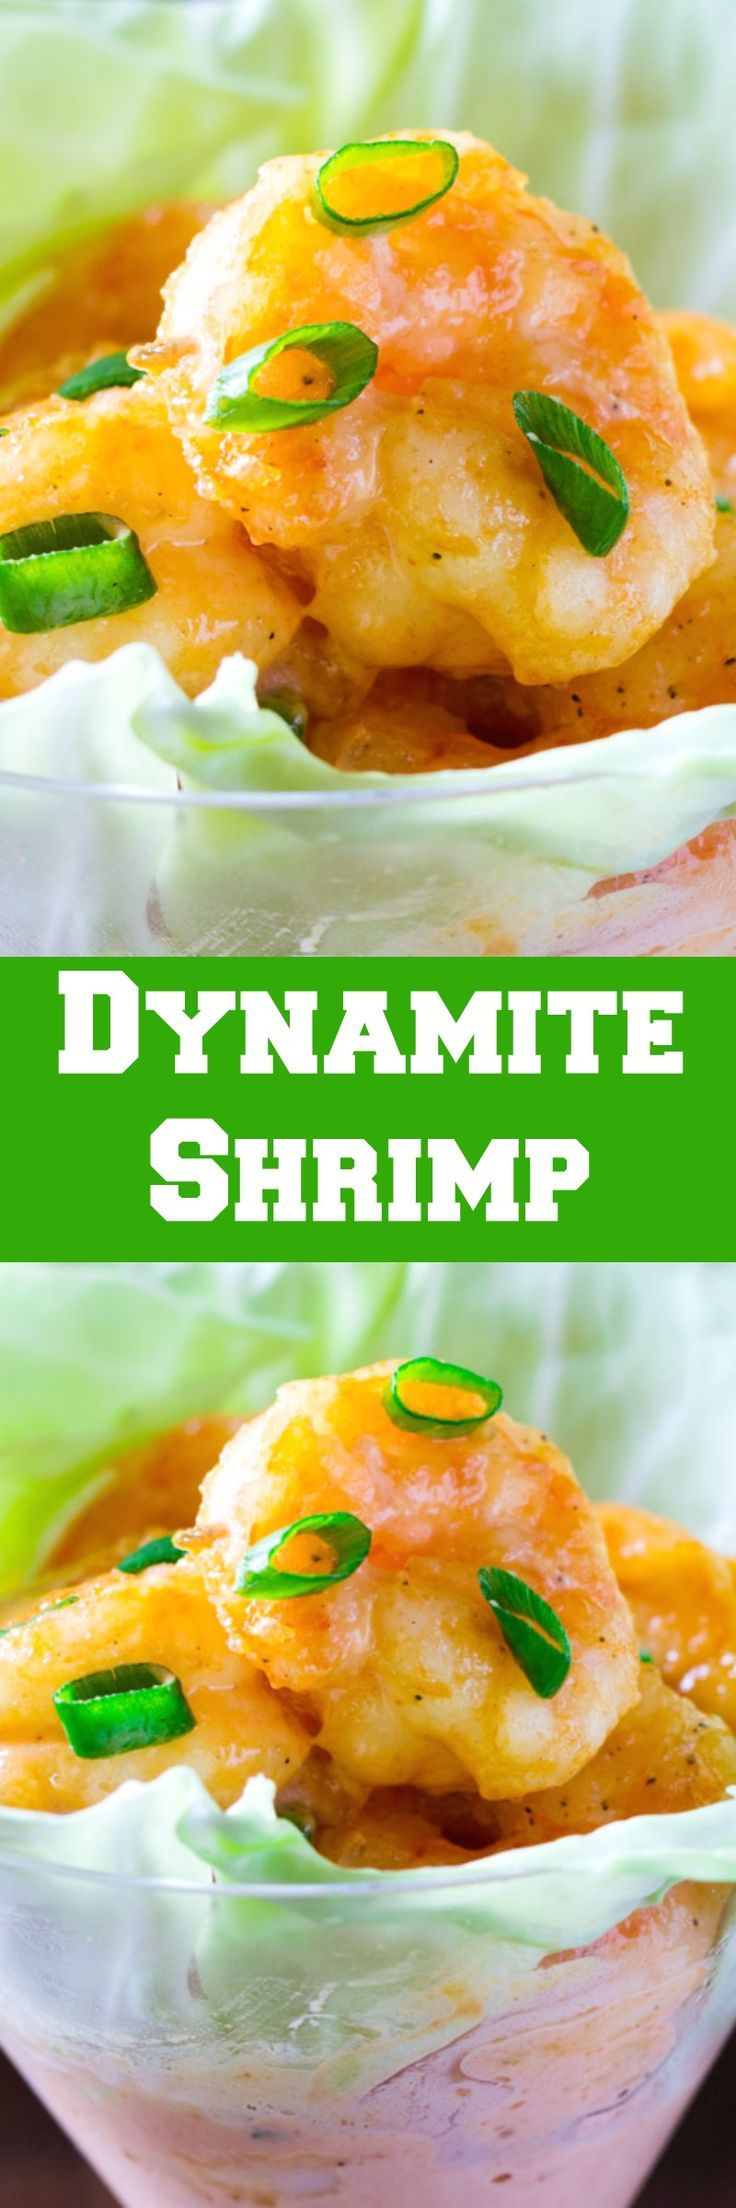 Learn how to make Dynamite Shrimp - Crispy fried shrimp coated in a spicy tangy mayo sauce! A perfect recipe for your favorite appetizer.